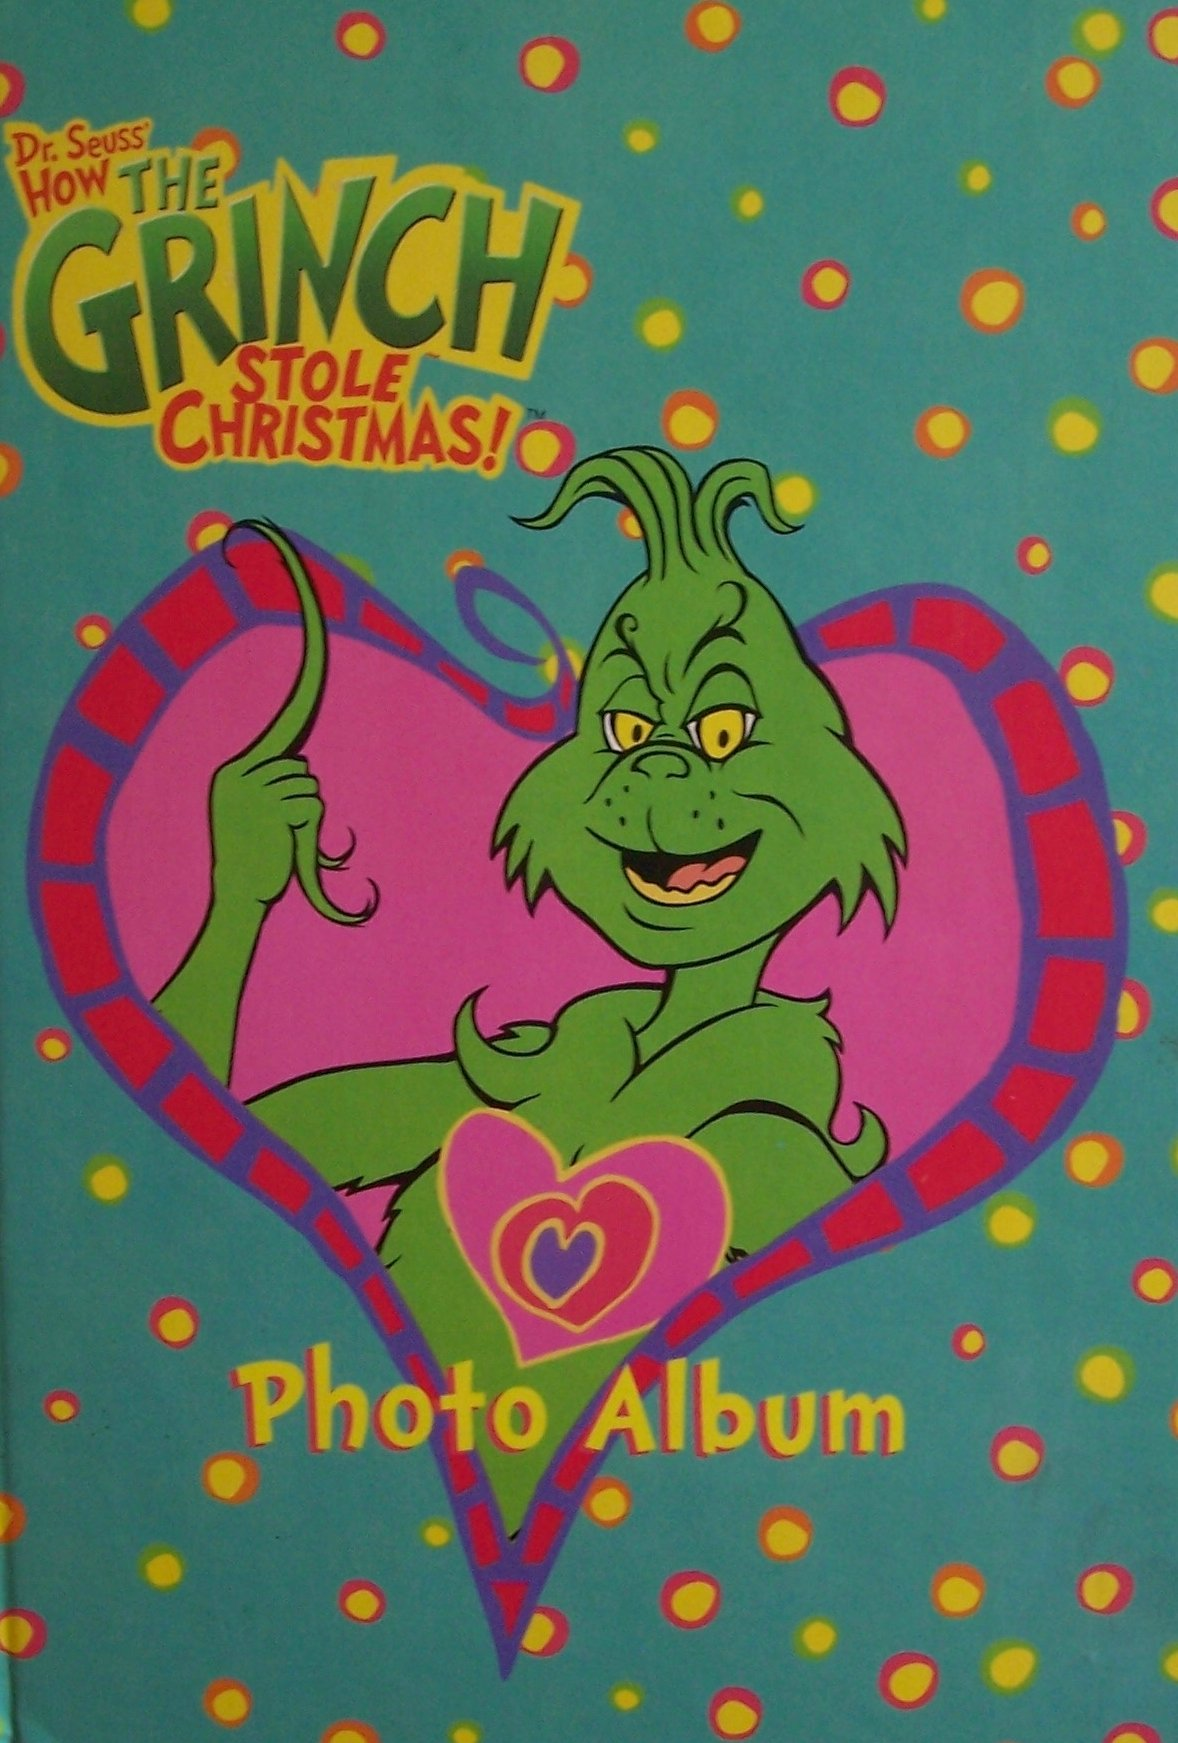 dr seuss how the grinch stole christmas photo album this 2000 edition exclusive to big face books big face books amazoncom books - Who Wrote How The Grinch Stole Christmas